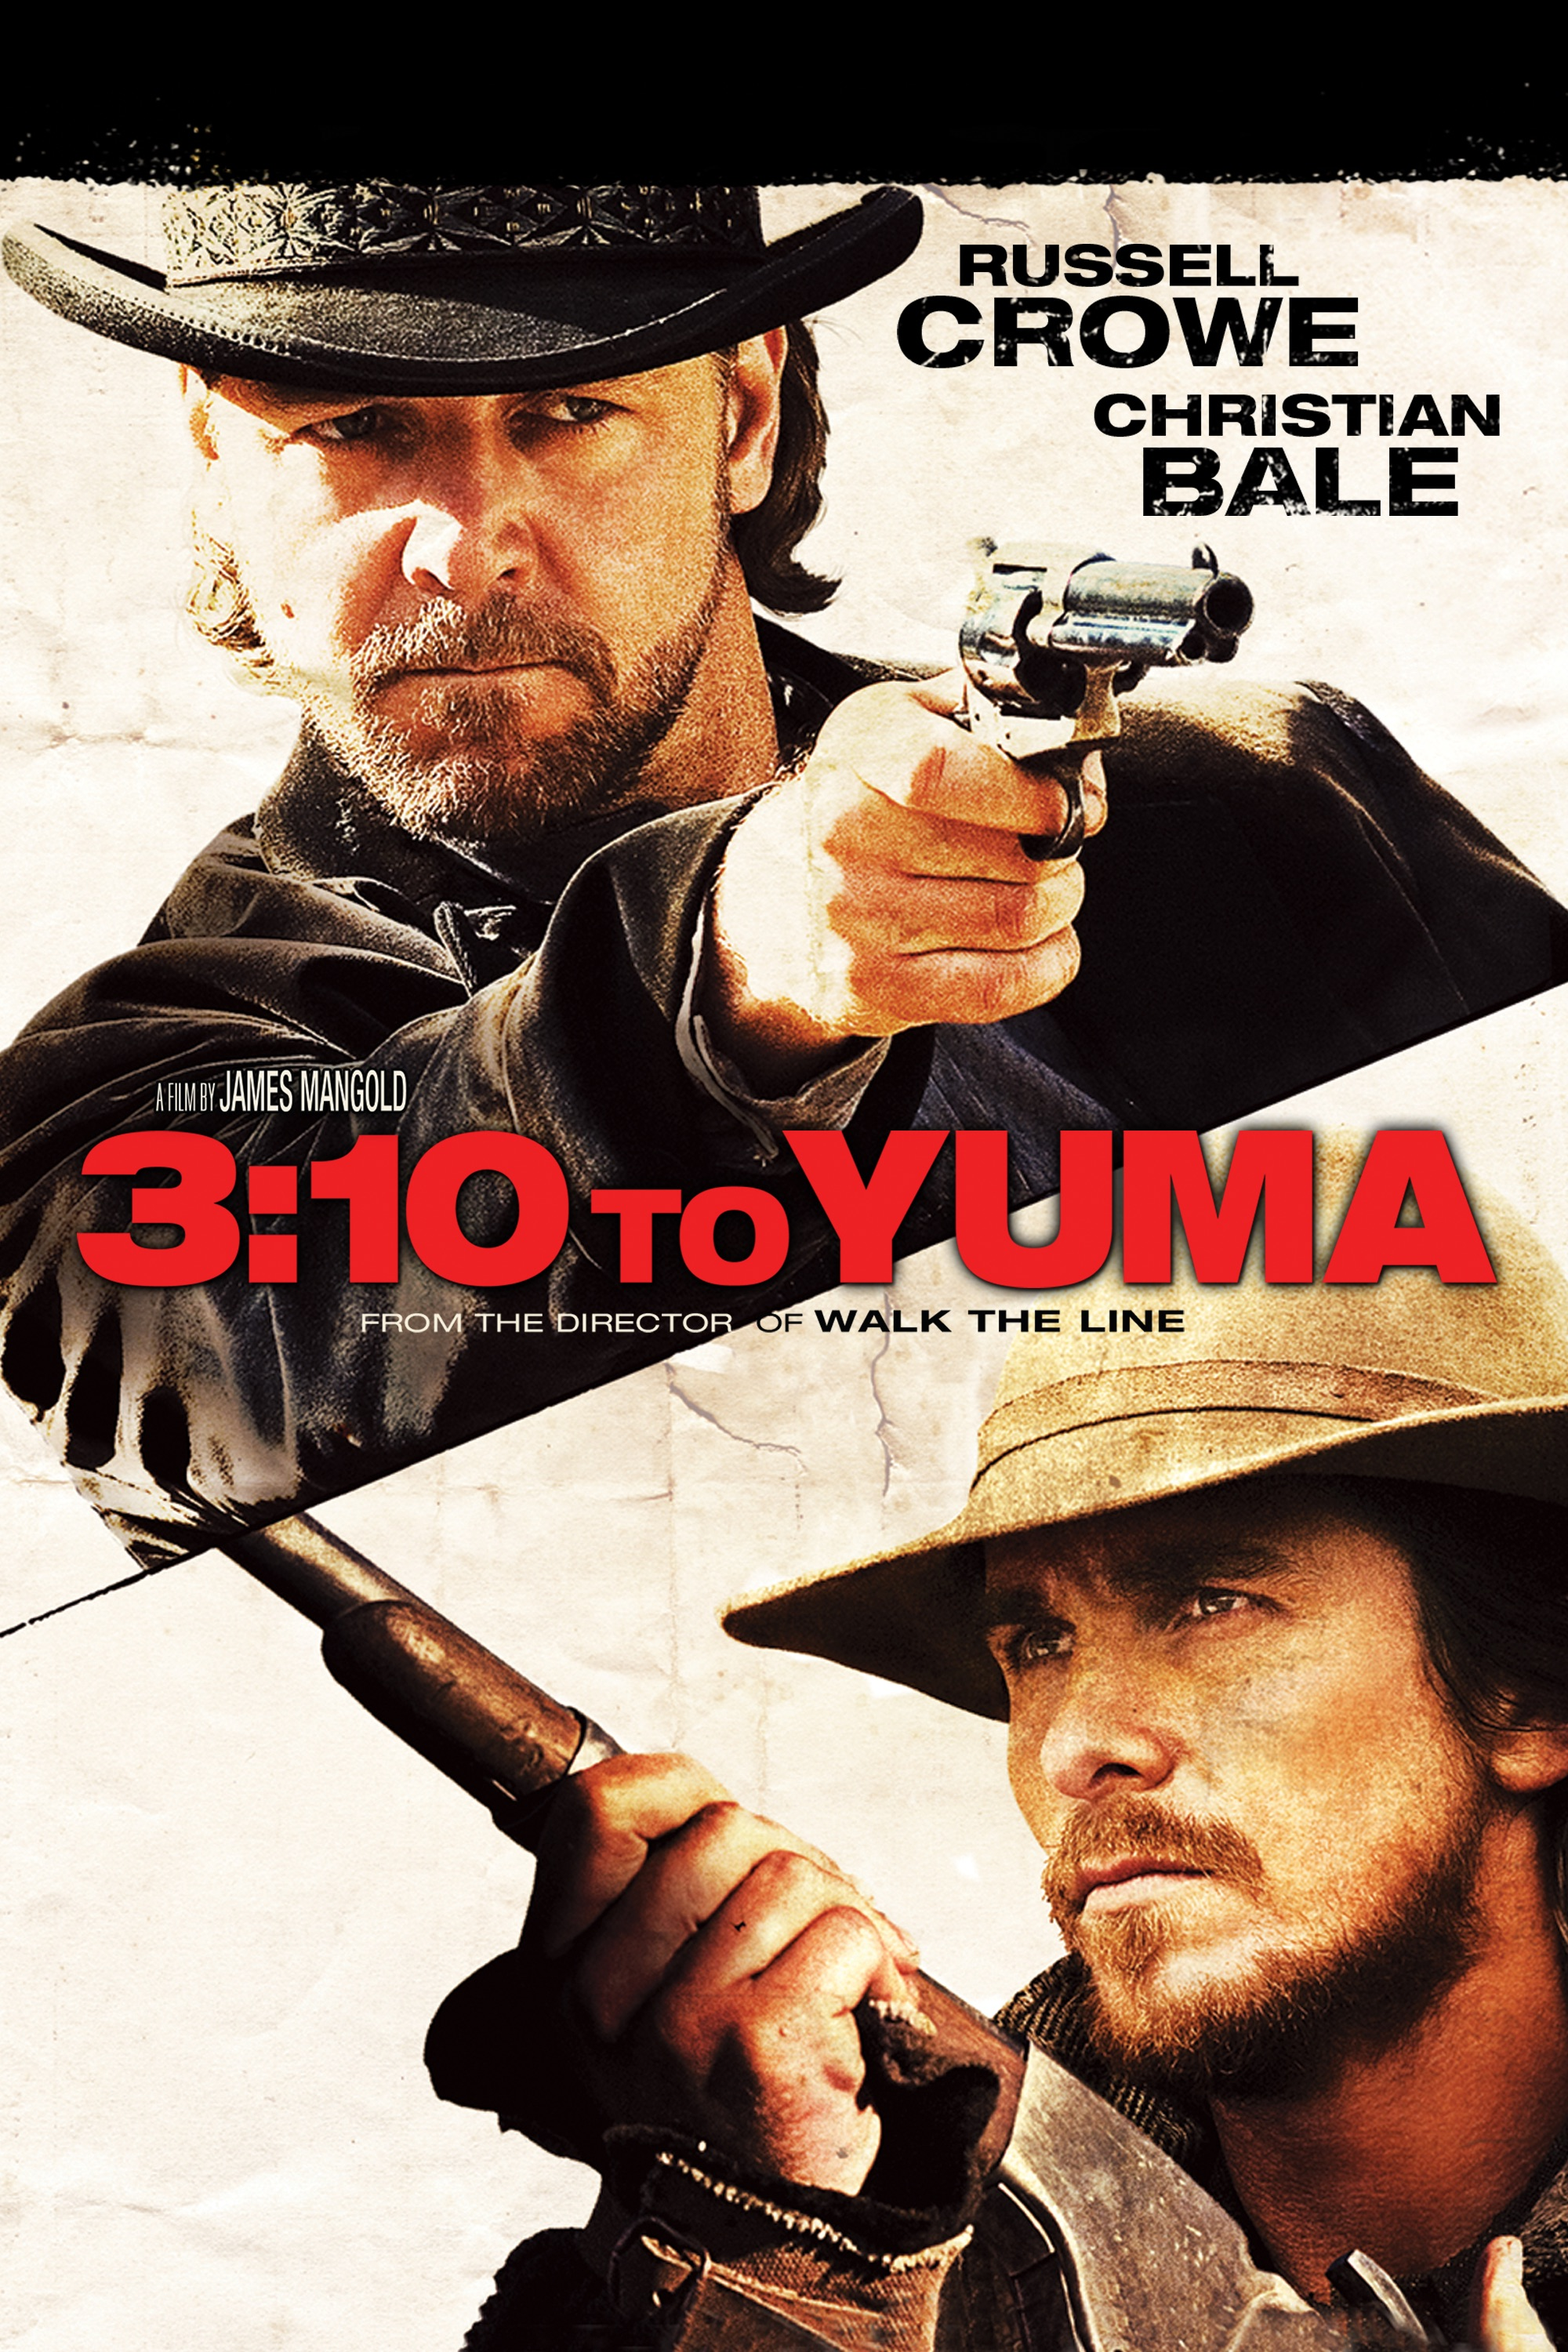 310 to Yuma Russell Crowe amp Christian Bale Exclusive Interview ScreenSlam Loading Unsubscribe from ScreenSlam Cancel Unsubscribe Working Subscribe Subscribed Unsubscribe 623K Loading